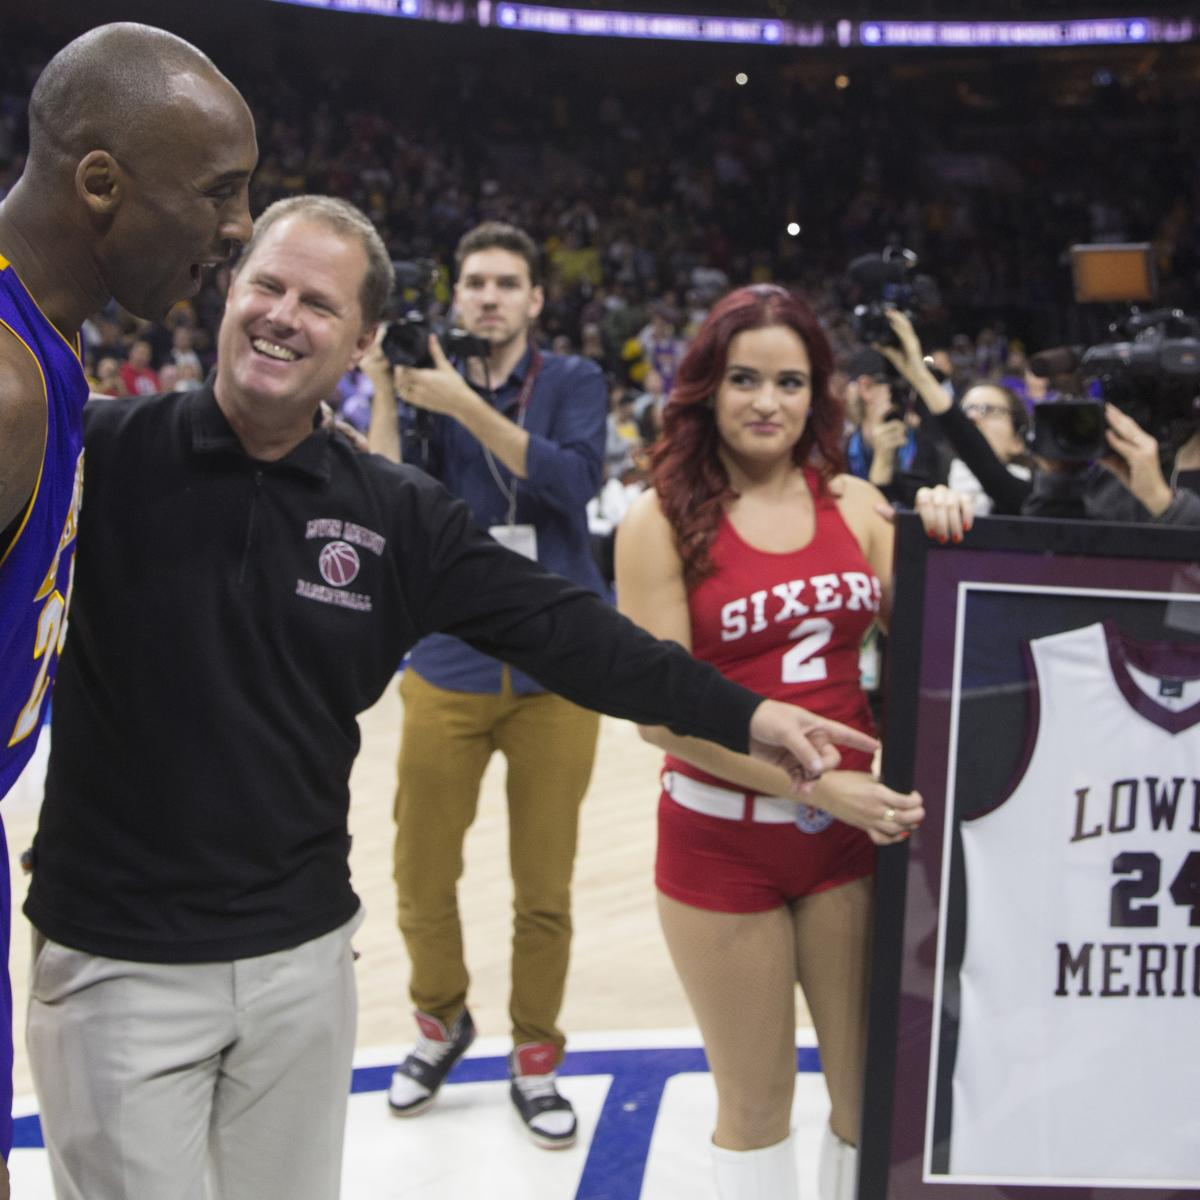 Kobe Bryant Memorabilia Stolen From Lower Merion High